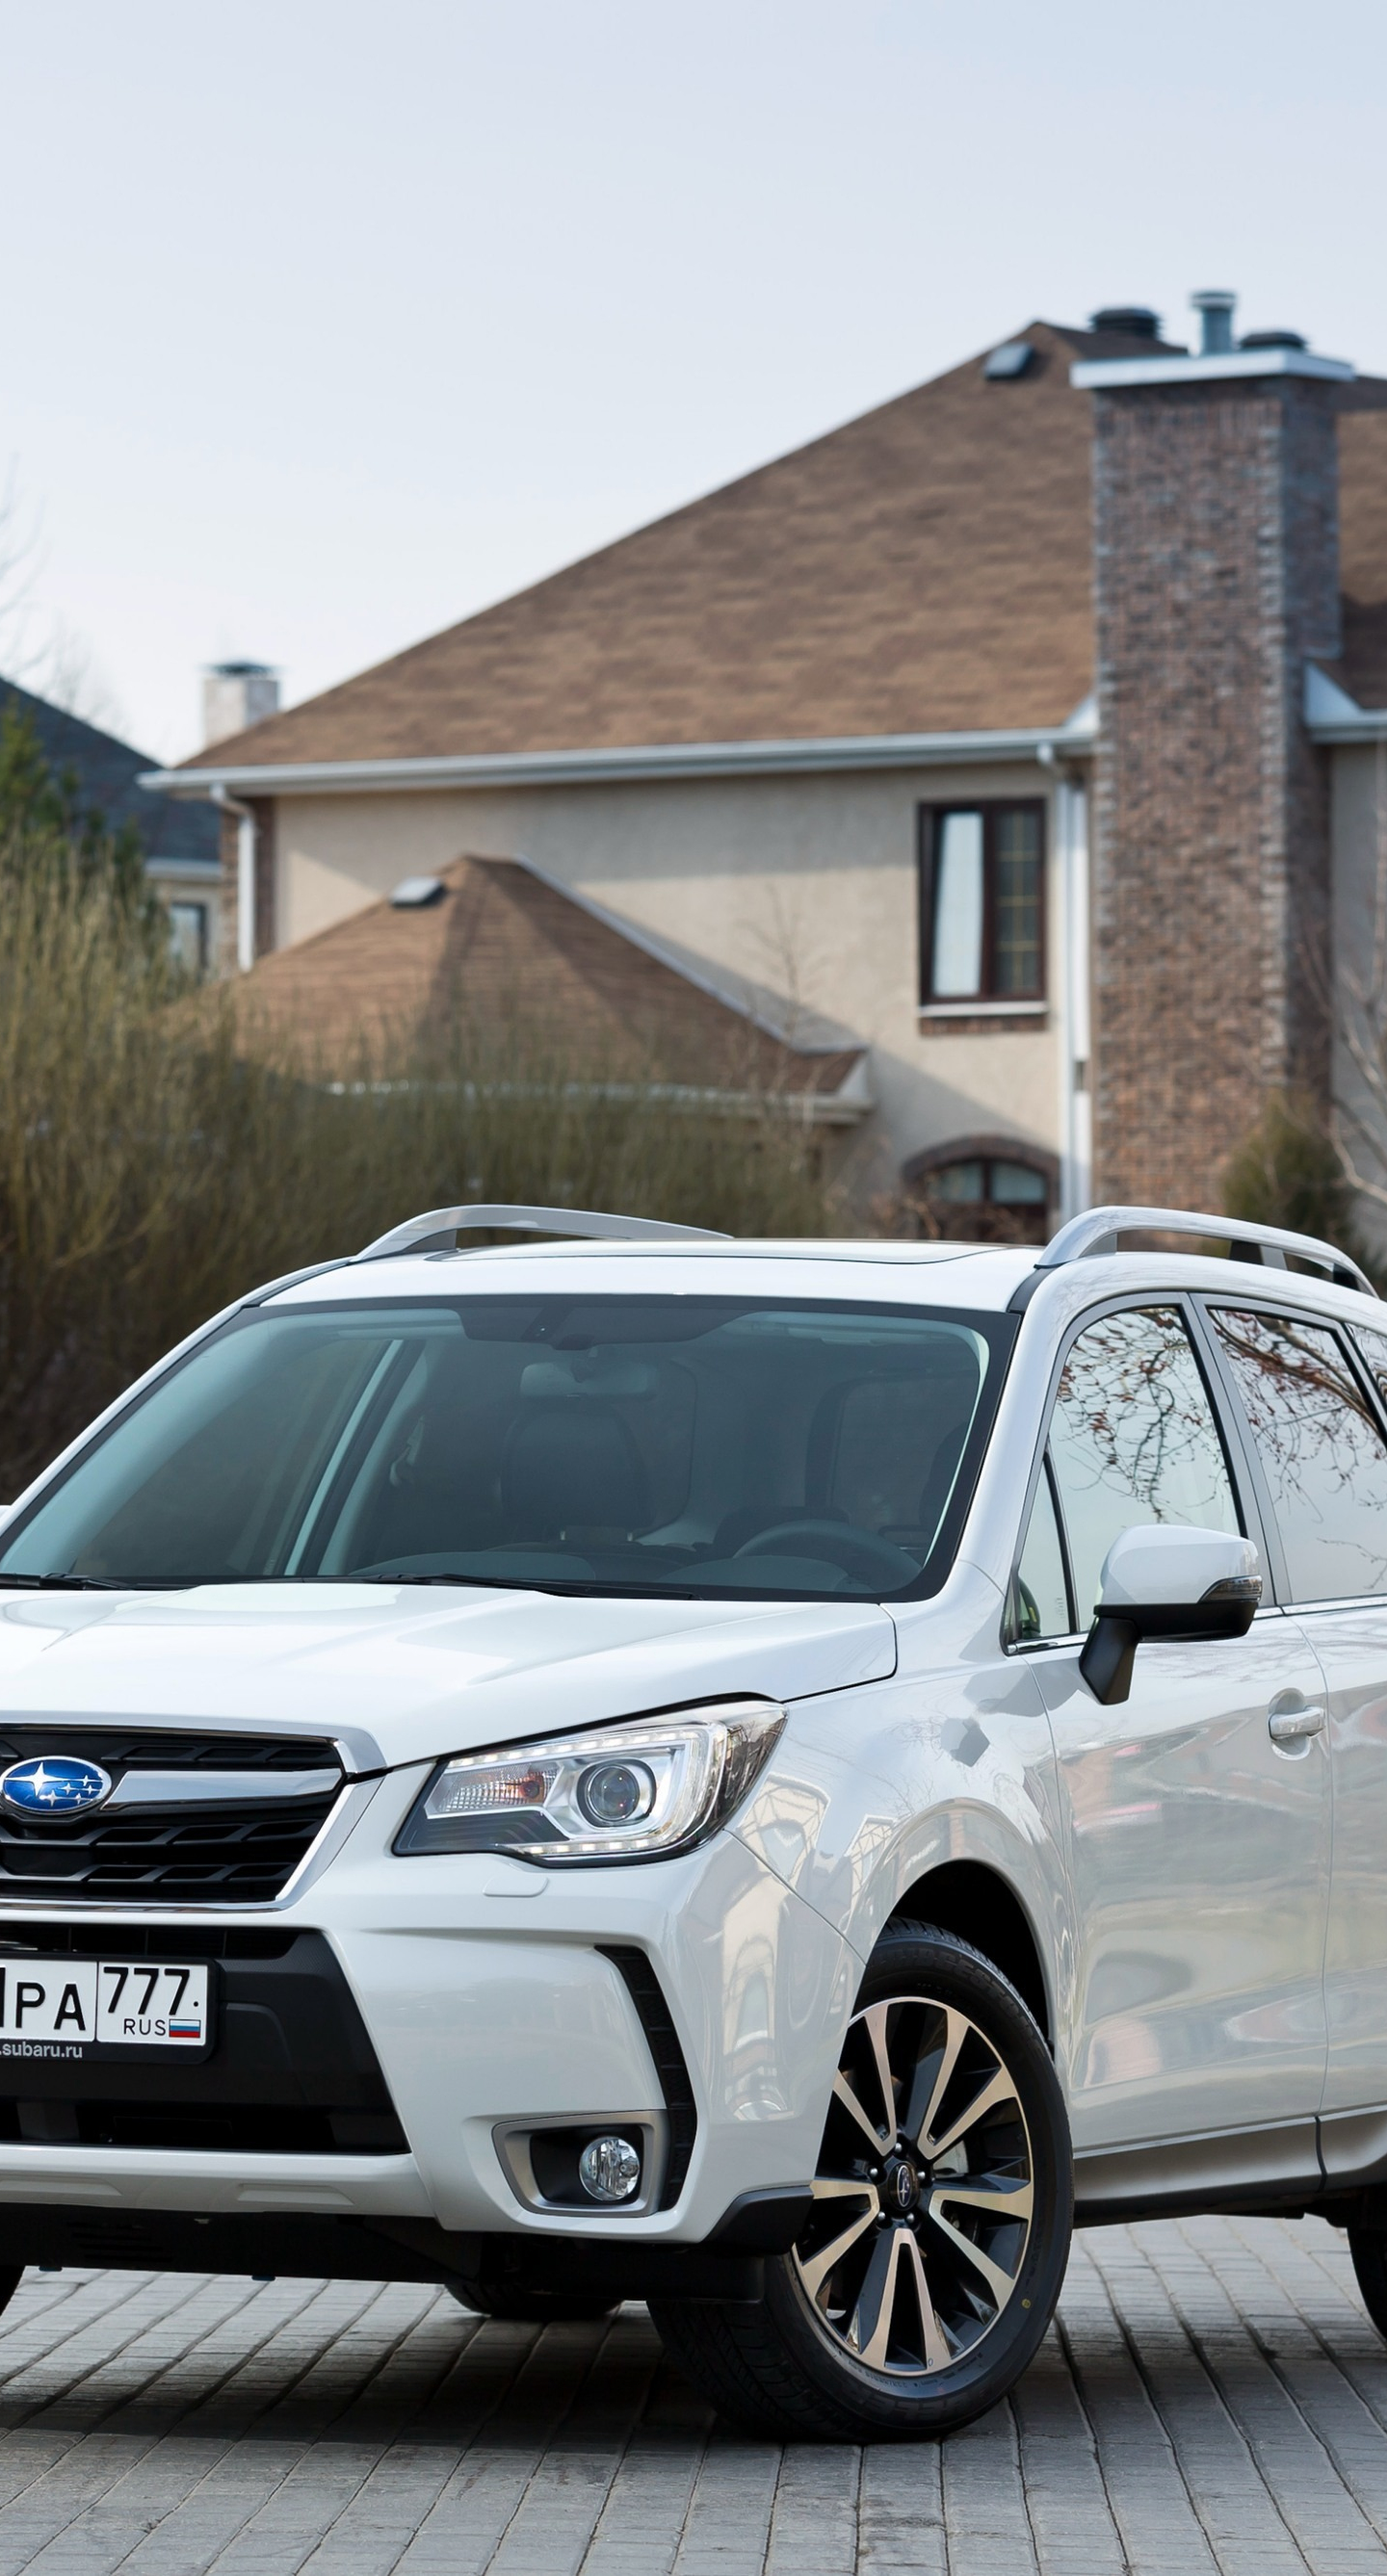 Download 1440x2960 Wallpaper 2018 Subaru Forester Compact Suv White Car Front Samsung Galaxy S8 Samsung Galaxy S8 Plus 1440x2960 Hd Image Background 3277